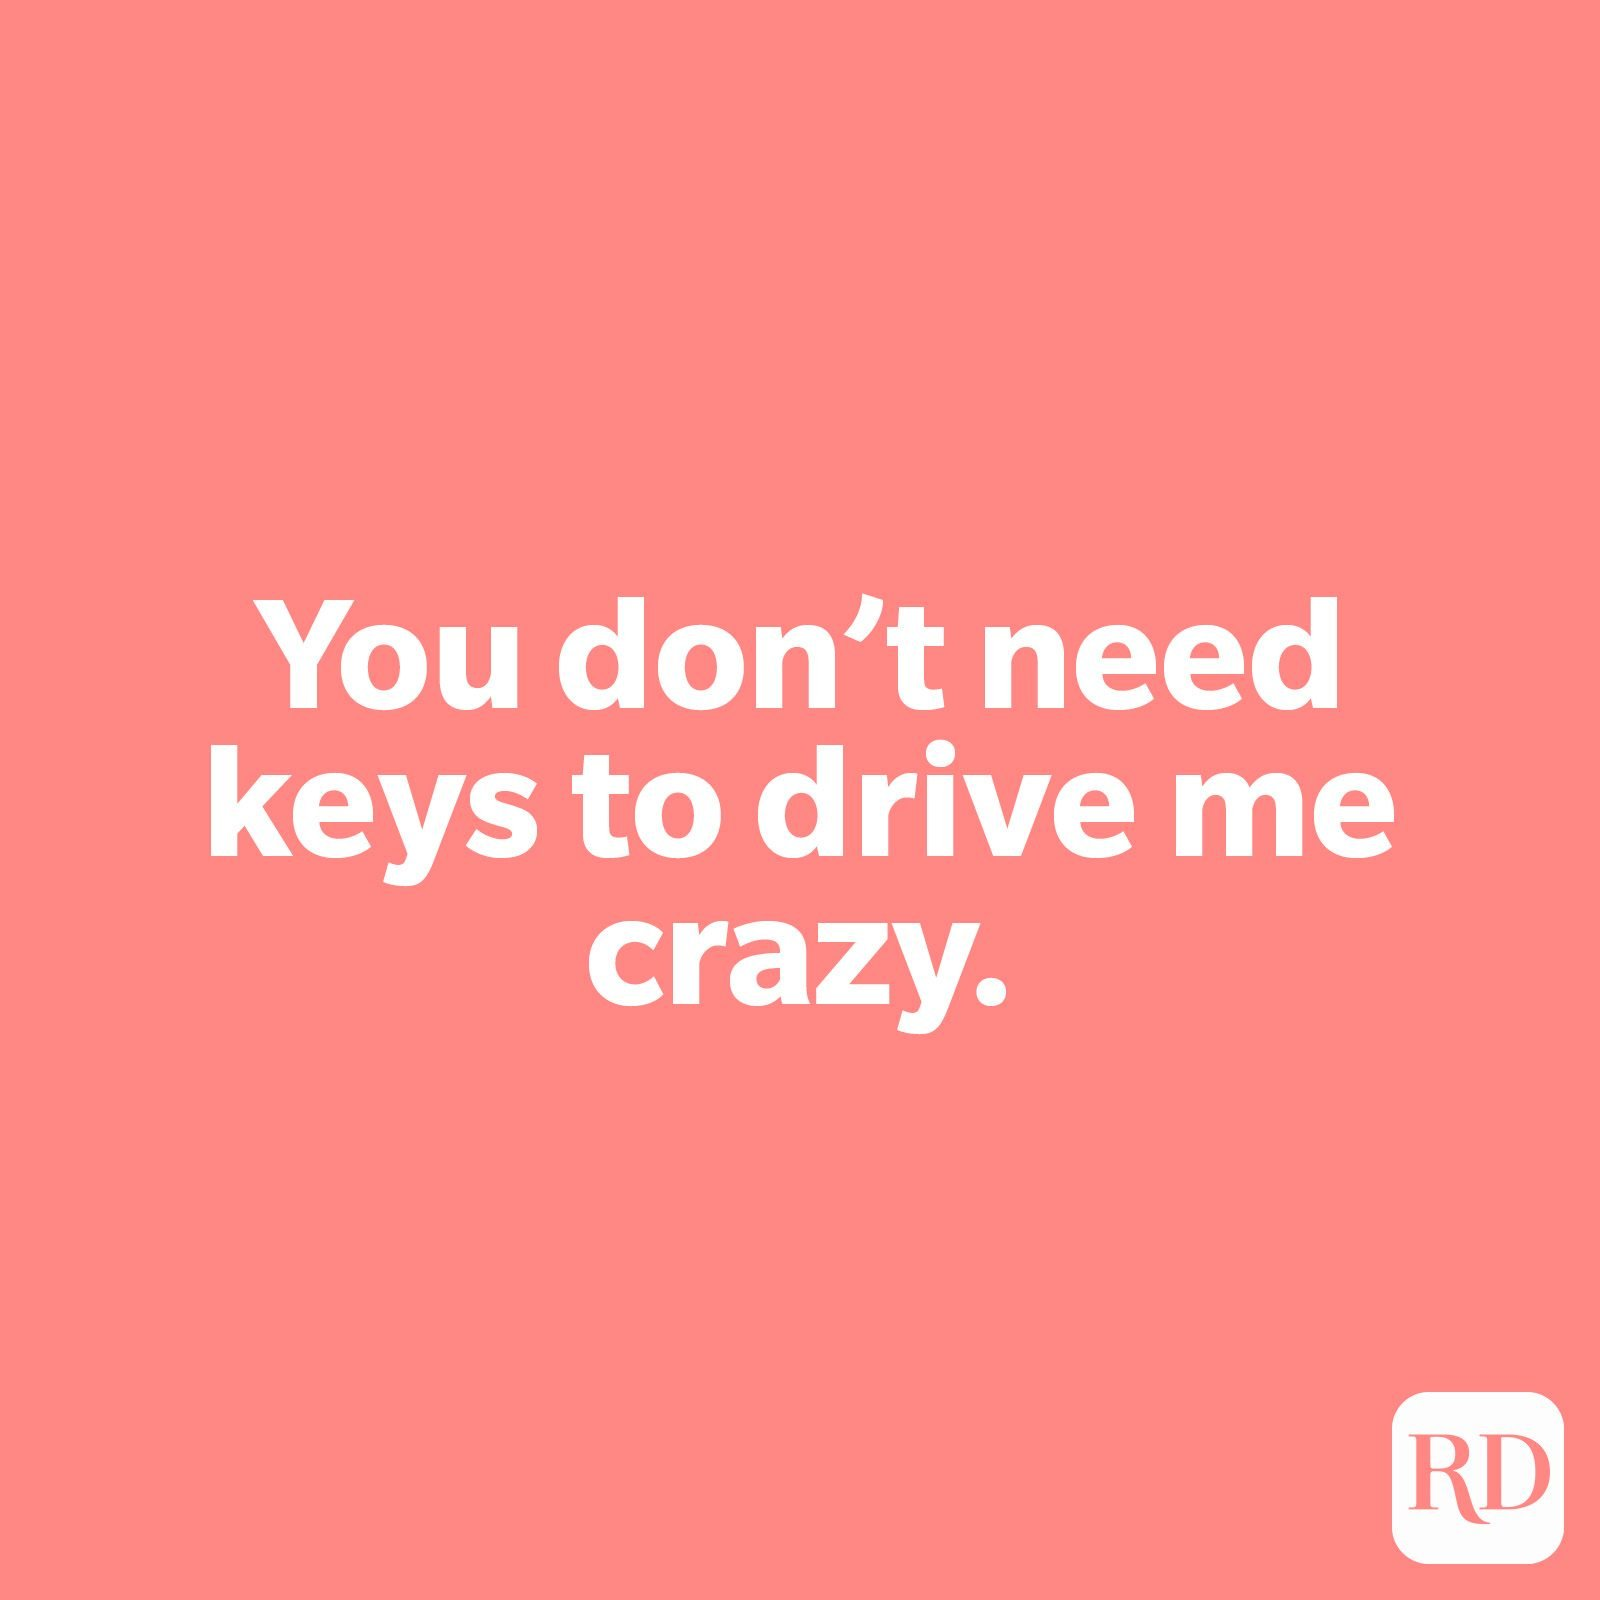 You don't need keys to drive me crazy.